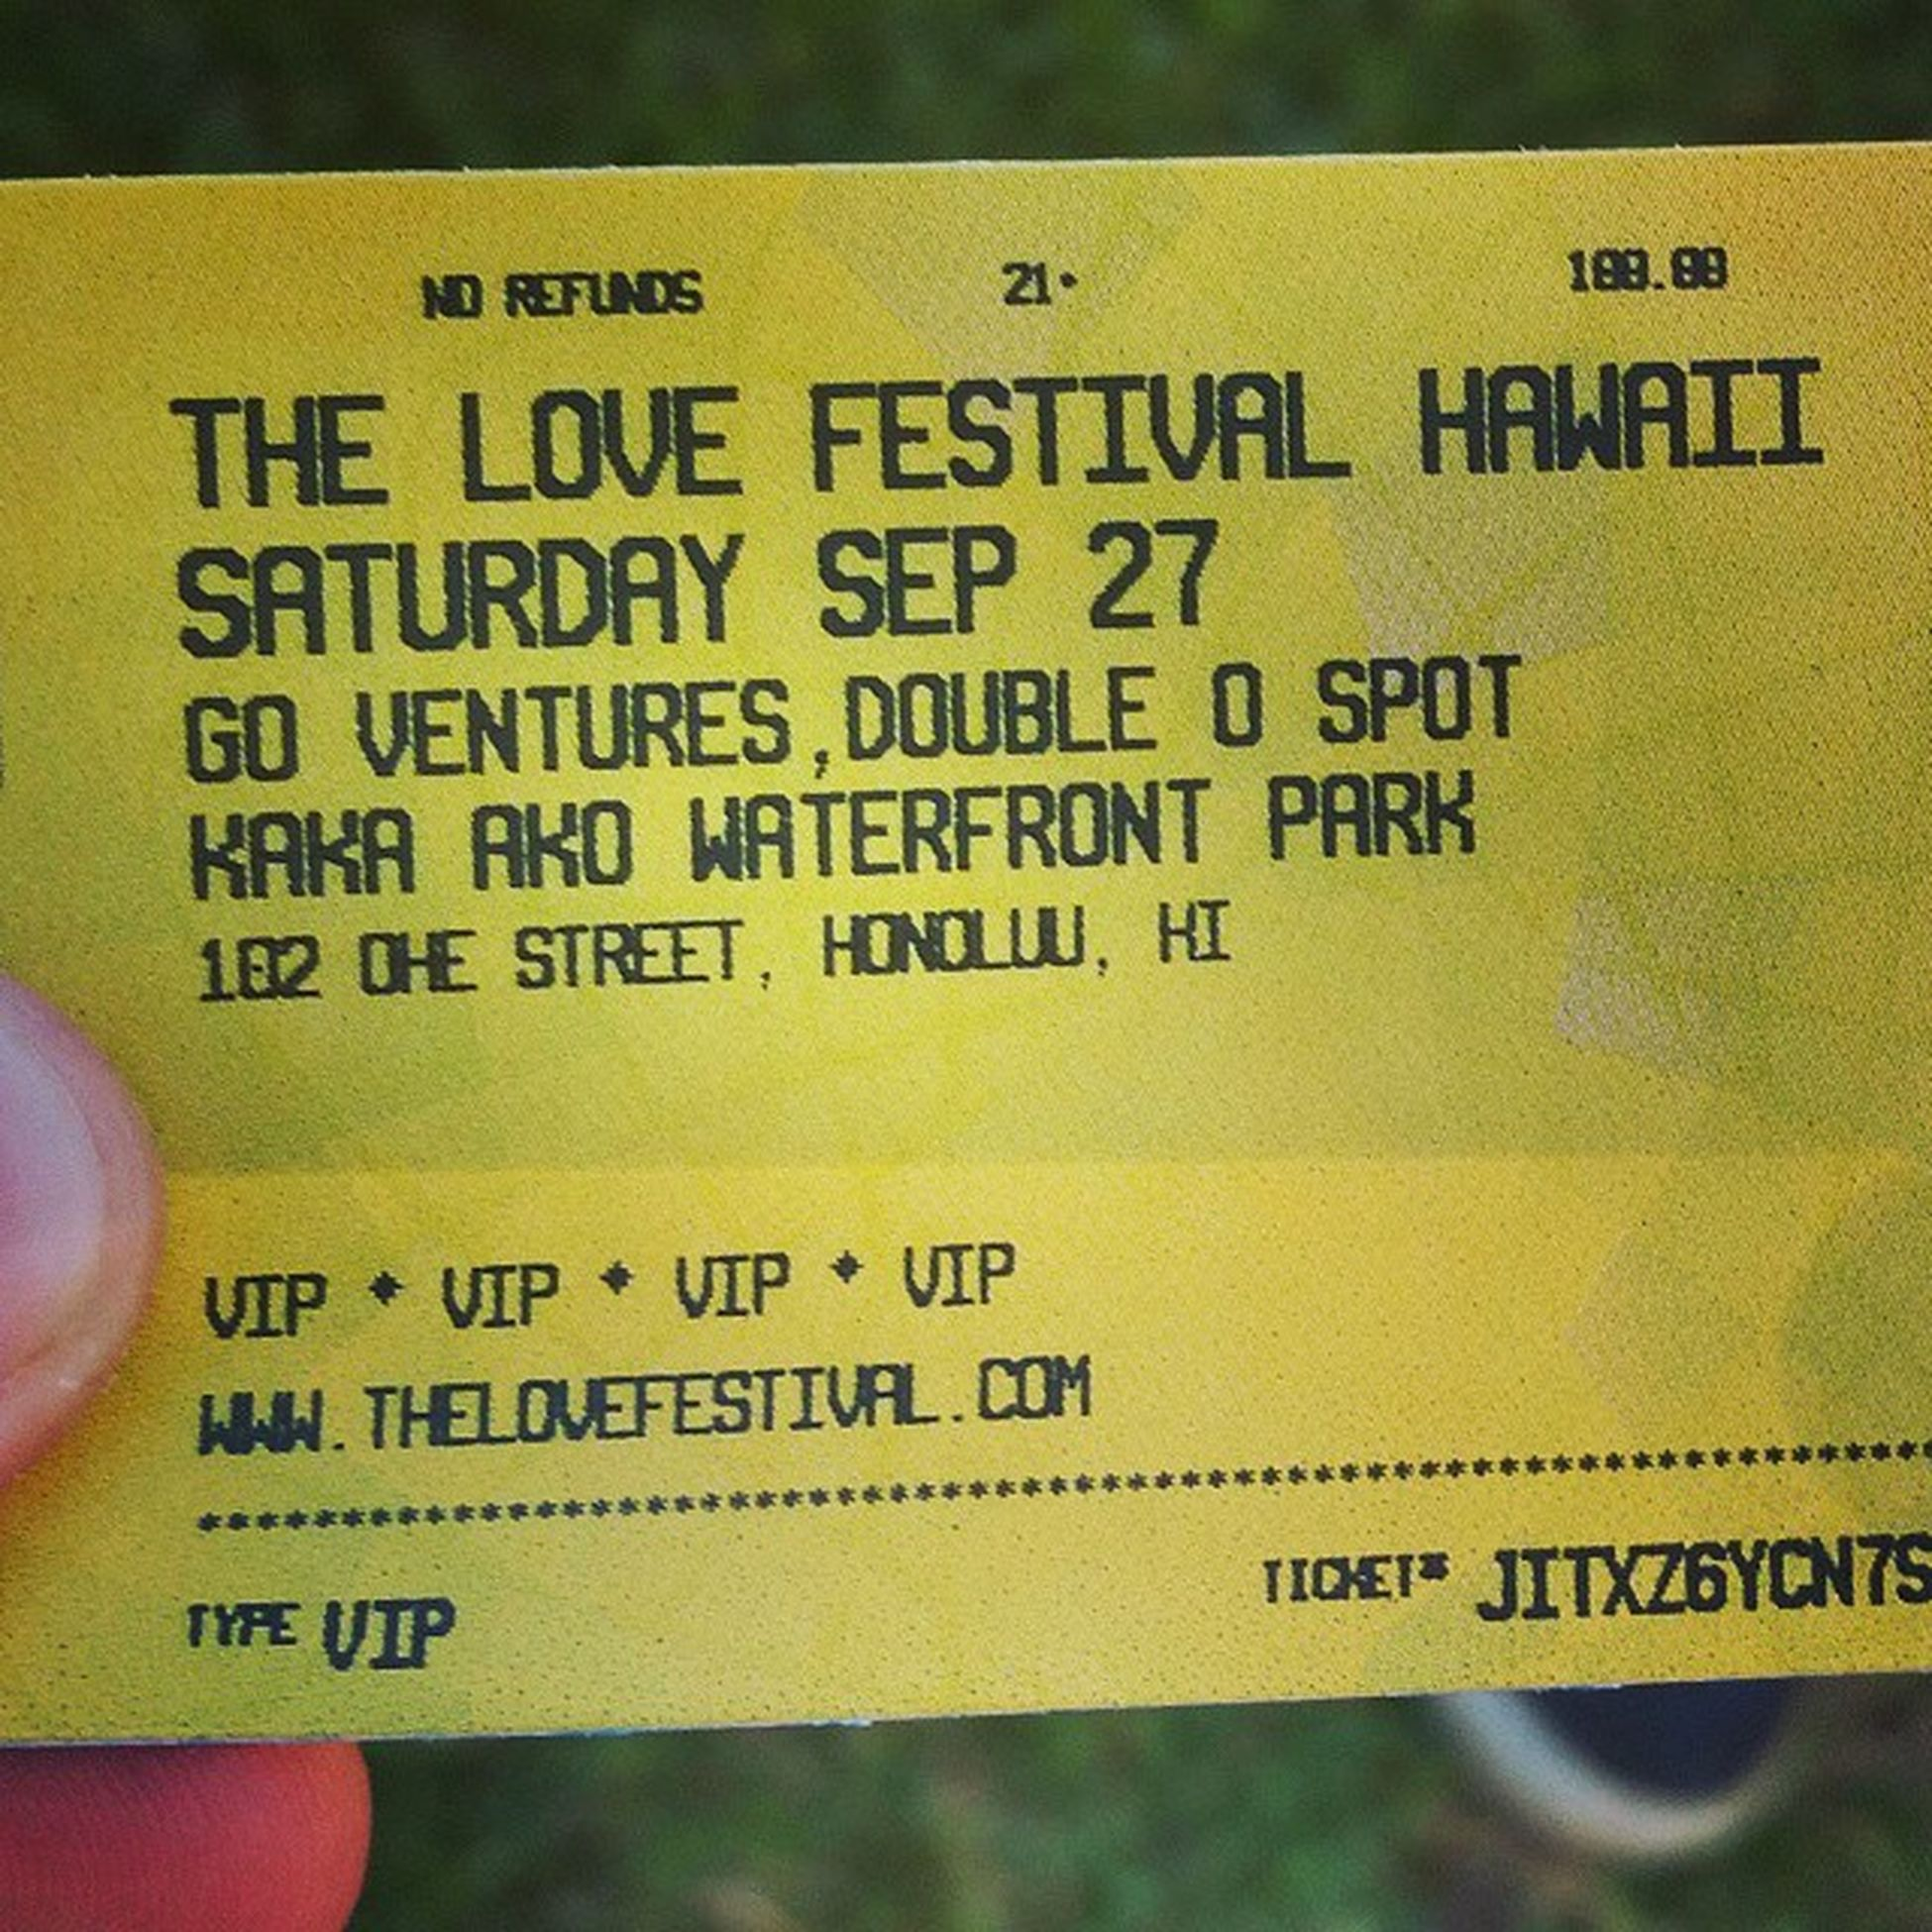 So stoked for this! Lovefestivalhawaii